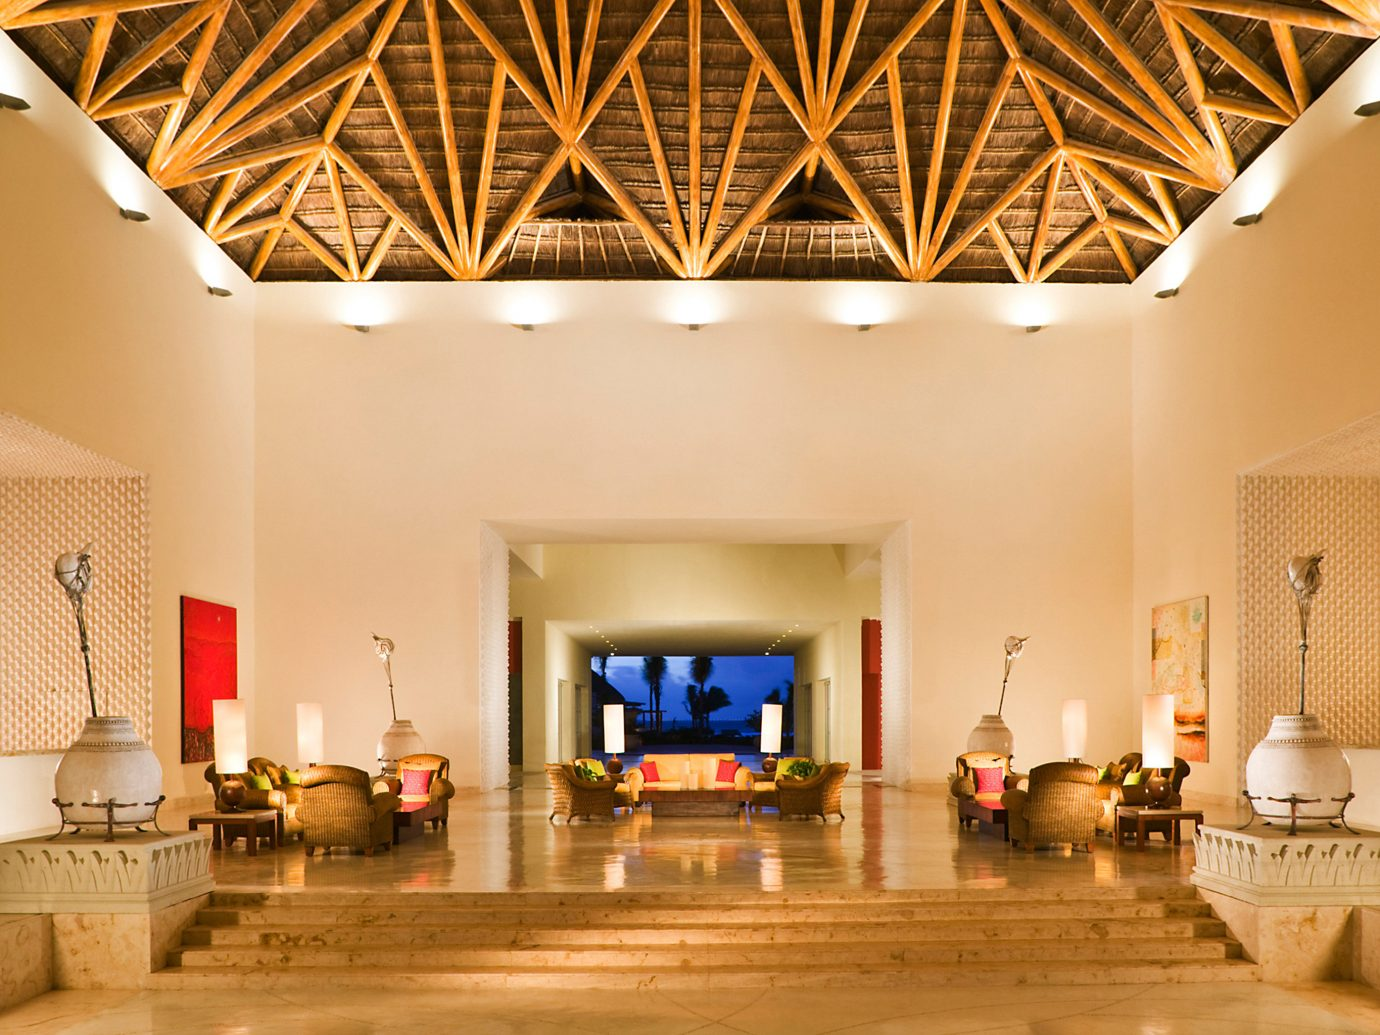 All-Inclusive Resorts Beachfront Elegant Family Travel Hotels Living Lounge Luxury Modern Scenic views Tropical wall indoor ceiling floor room Lobby property estate living room home interior design furniture lighting Design real estate mansion Villa area decorated wood